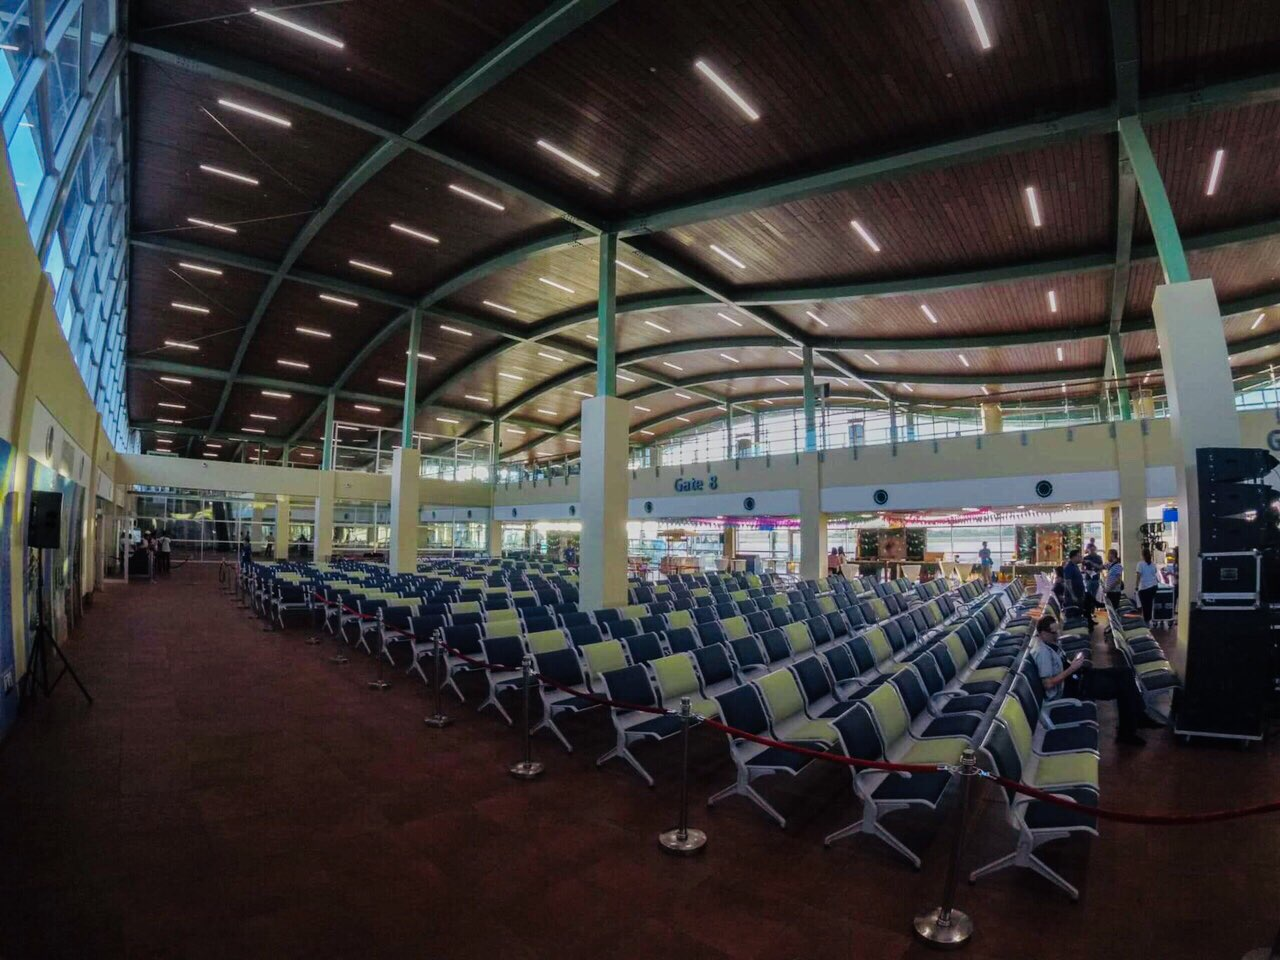 GATES. New boarding gates are more spacious and can accommodate more passengers during peak hours, compared to the Tagbilaran Airport.